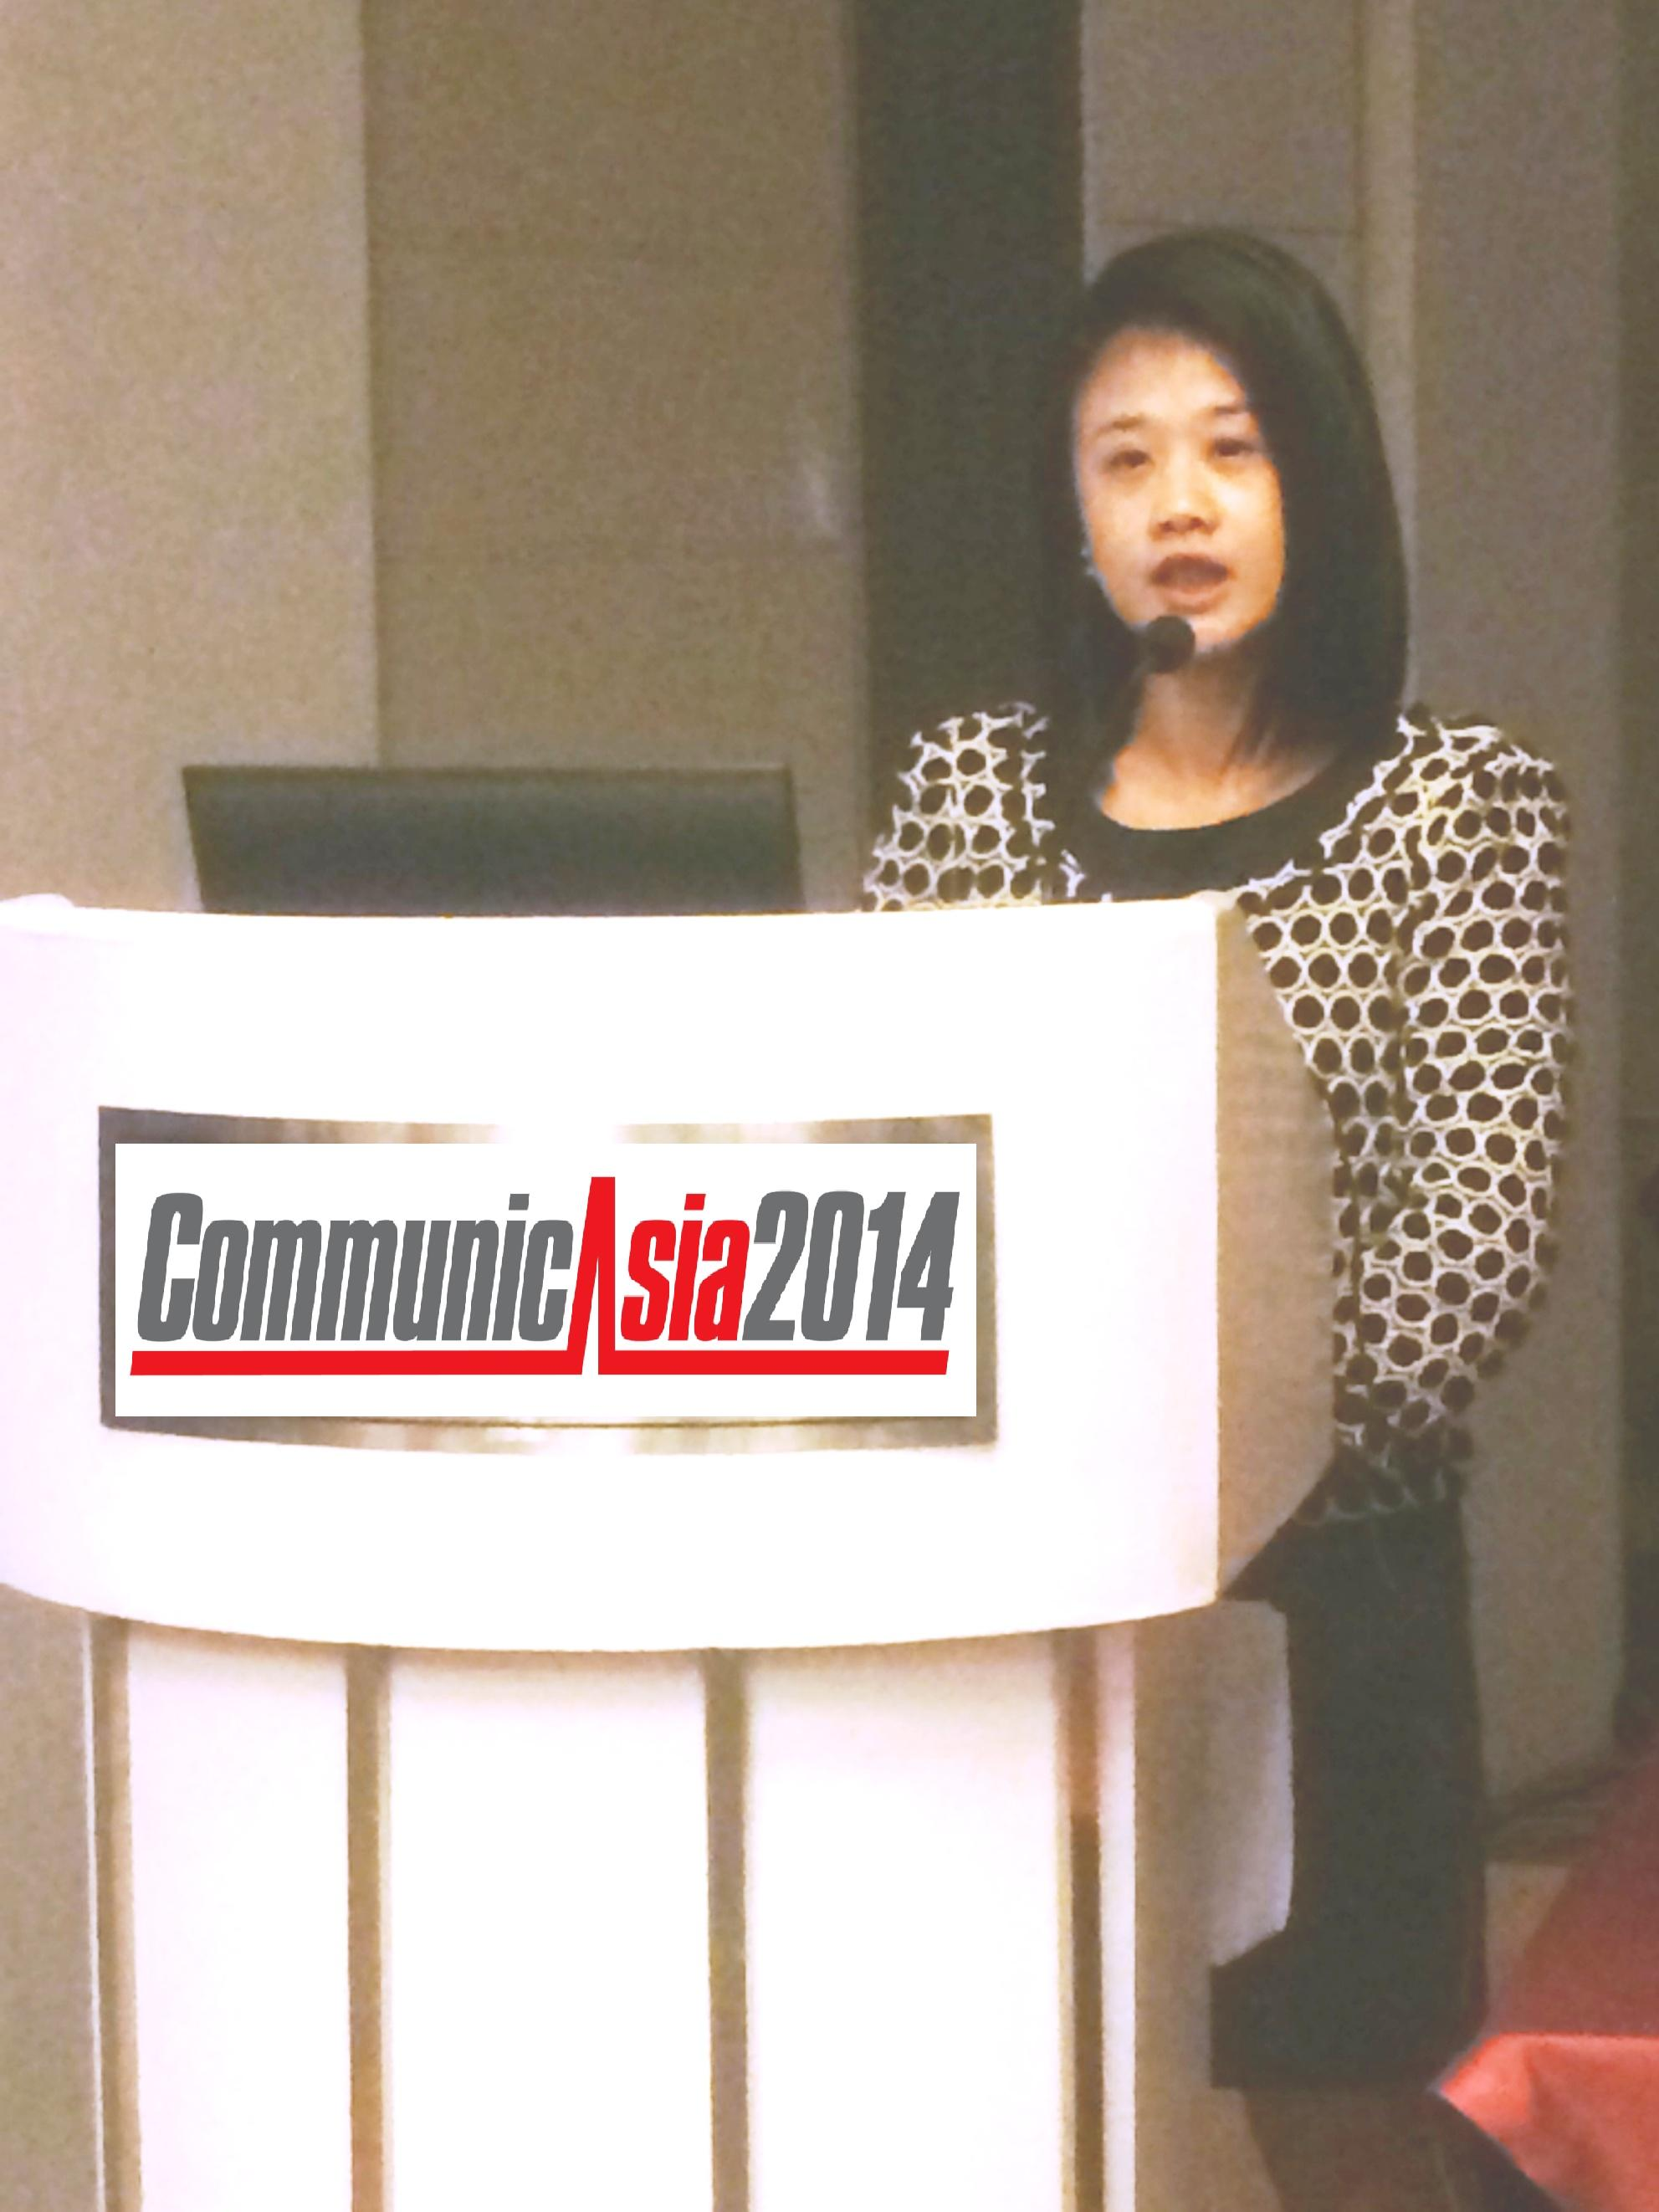 Agnes Leung, Assistant Project Director, Communications Events, Singapore Exhibition Services